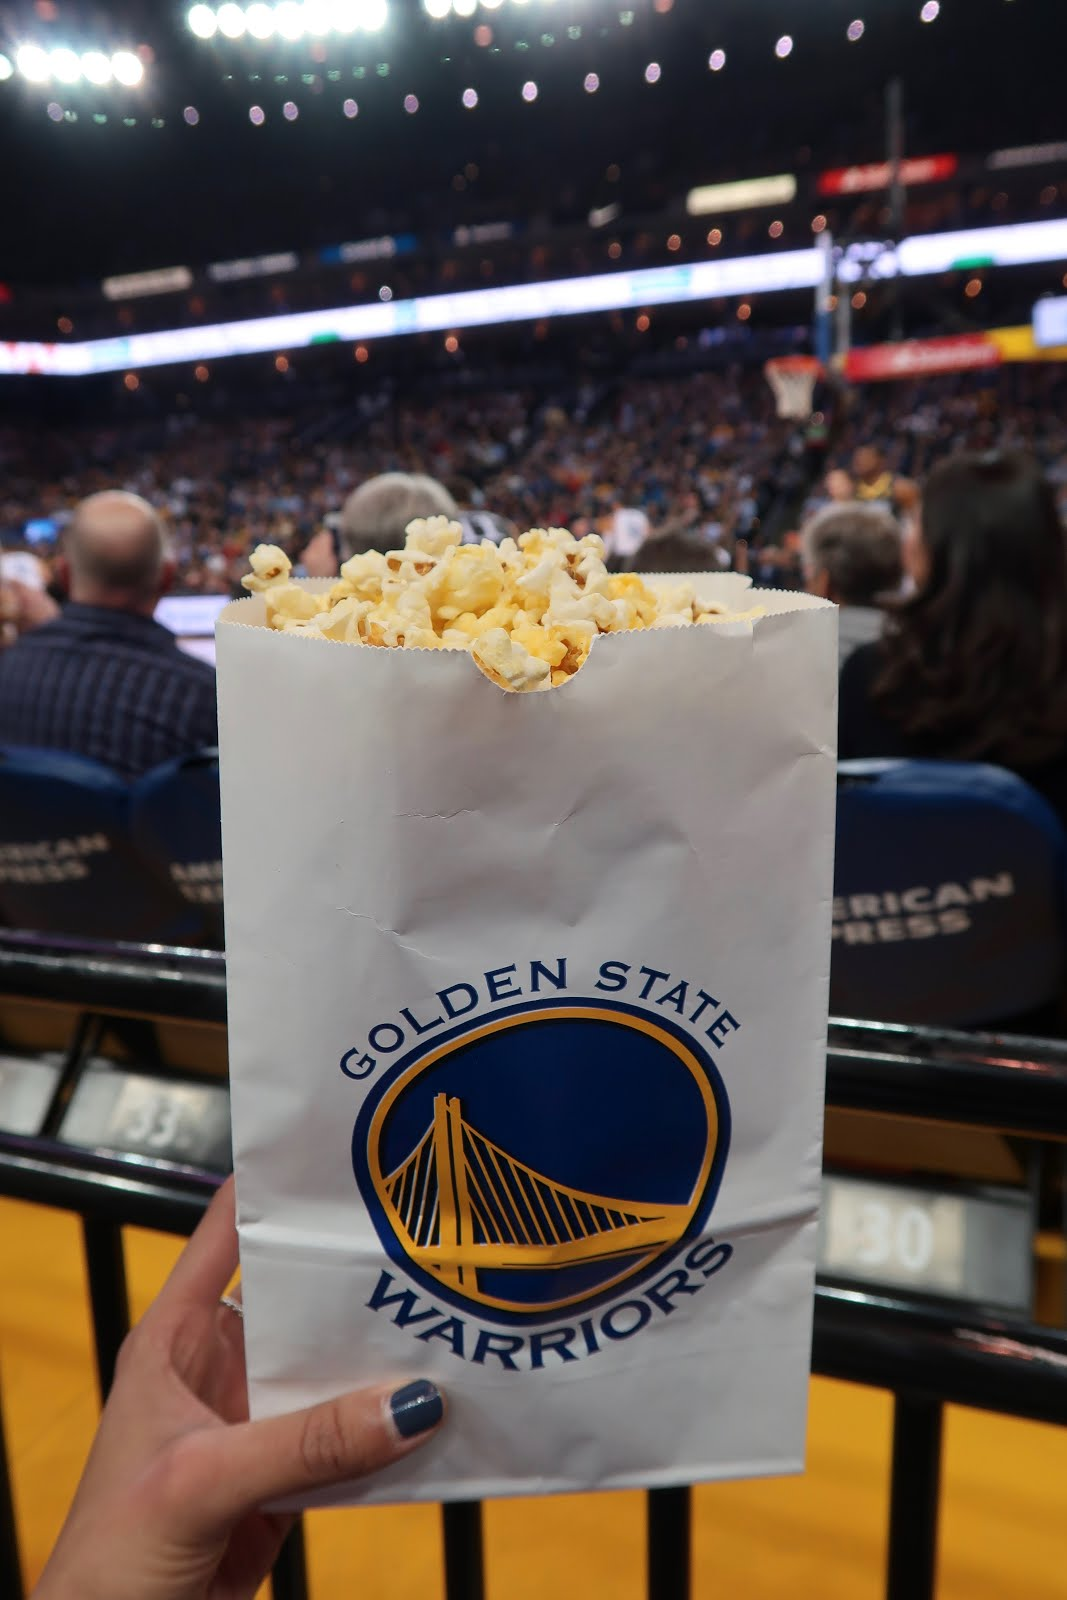 Coutside Basketball game snacking. Popcorn, please!